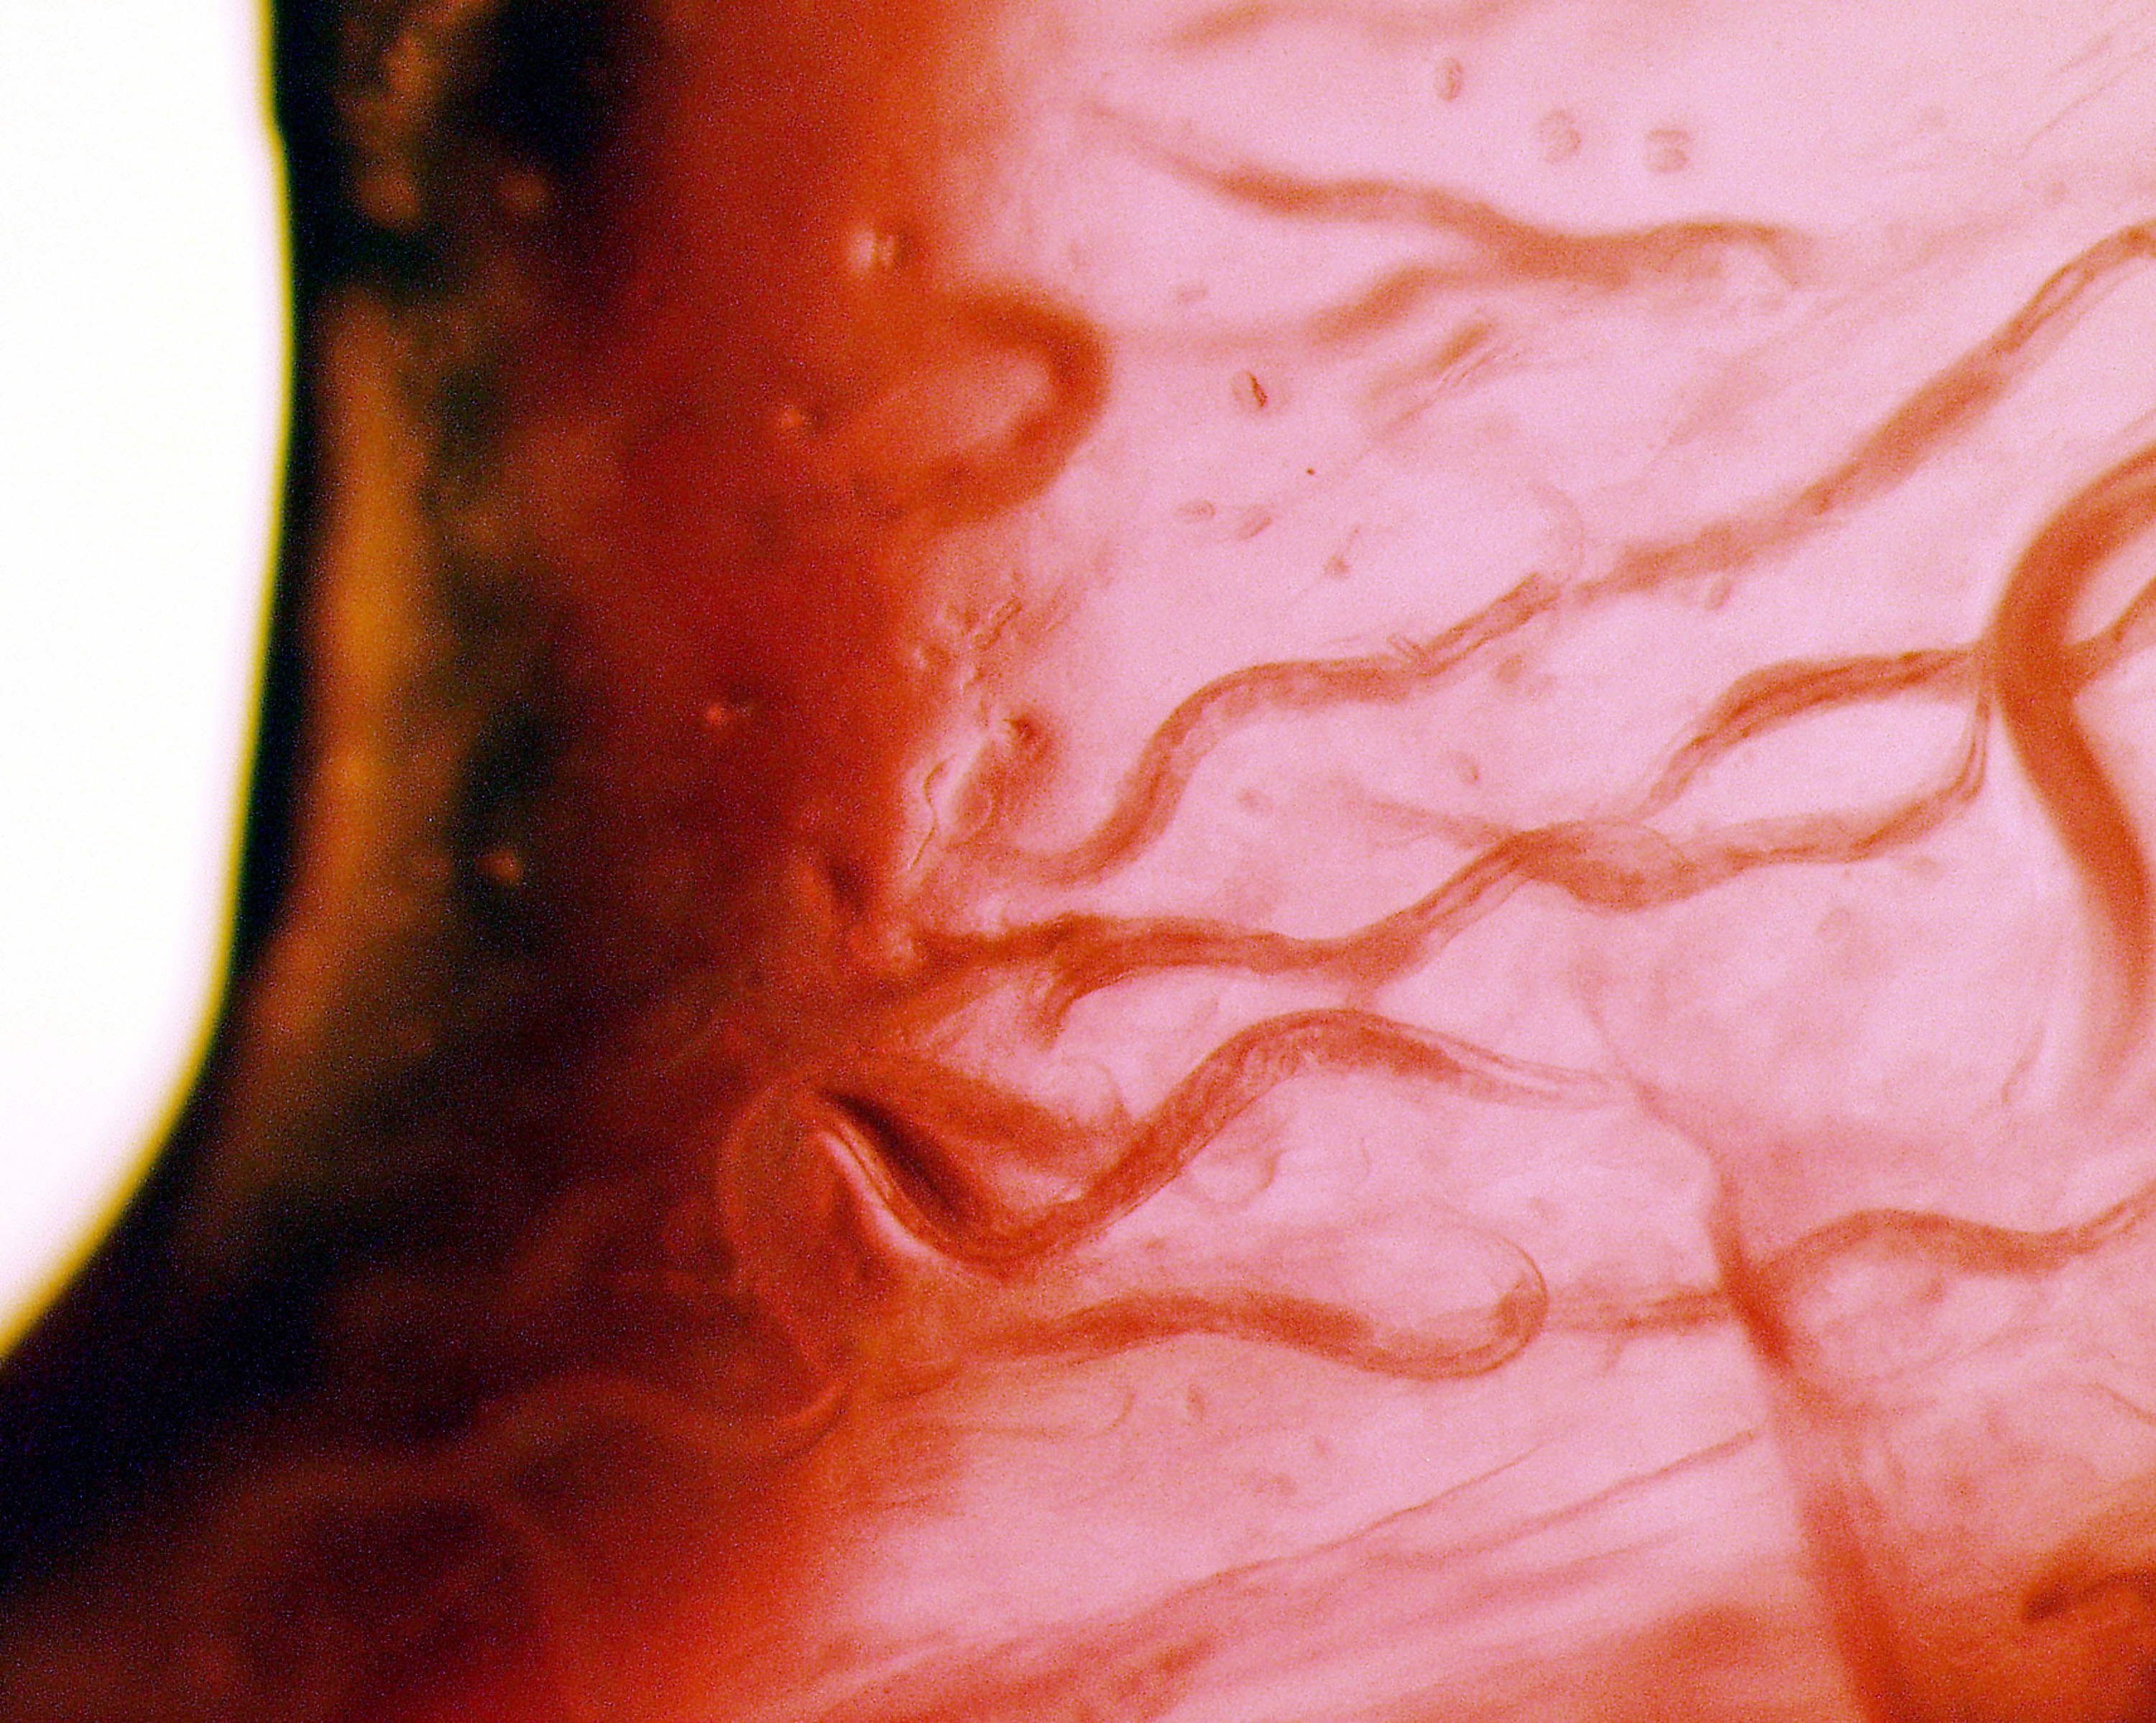 Top 4 Ways You Could Get a Parasite Infection